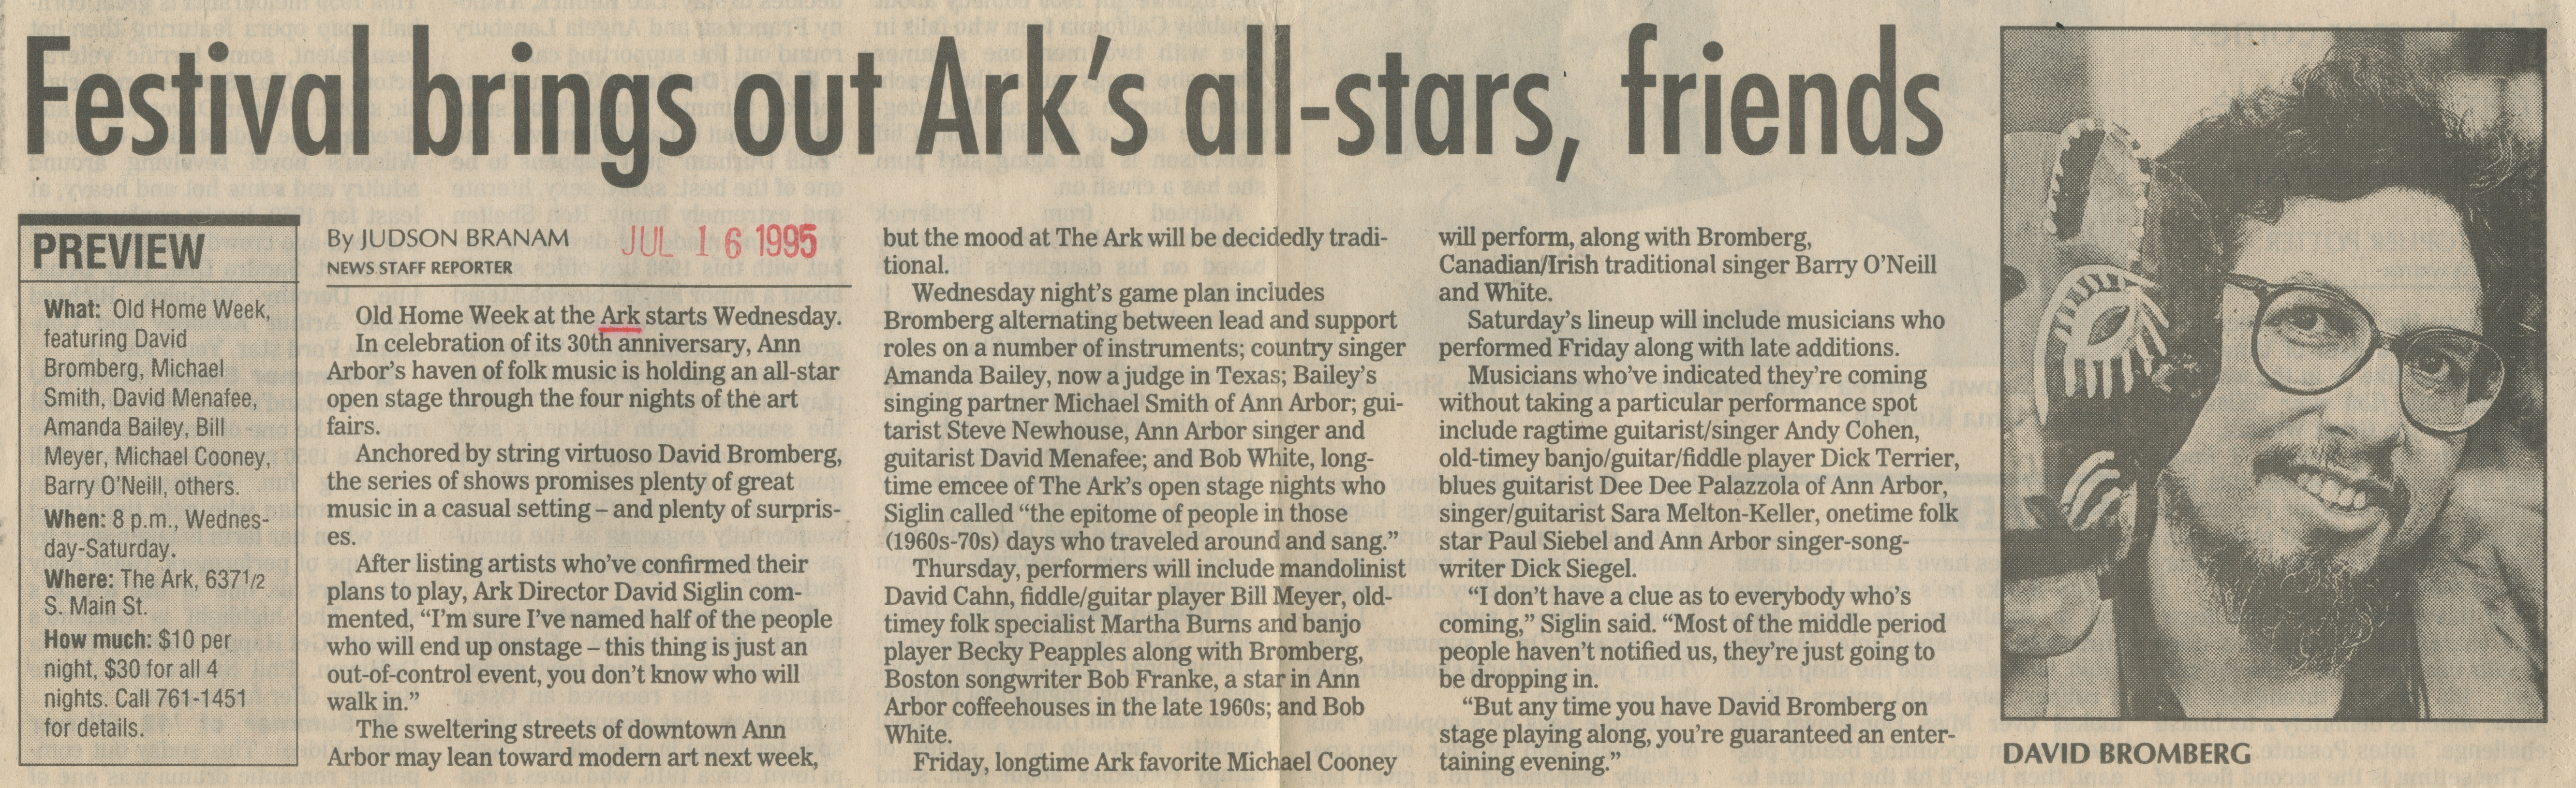 Festival Brings Out Ark's All-Stars, Friends image